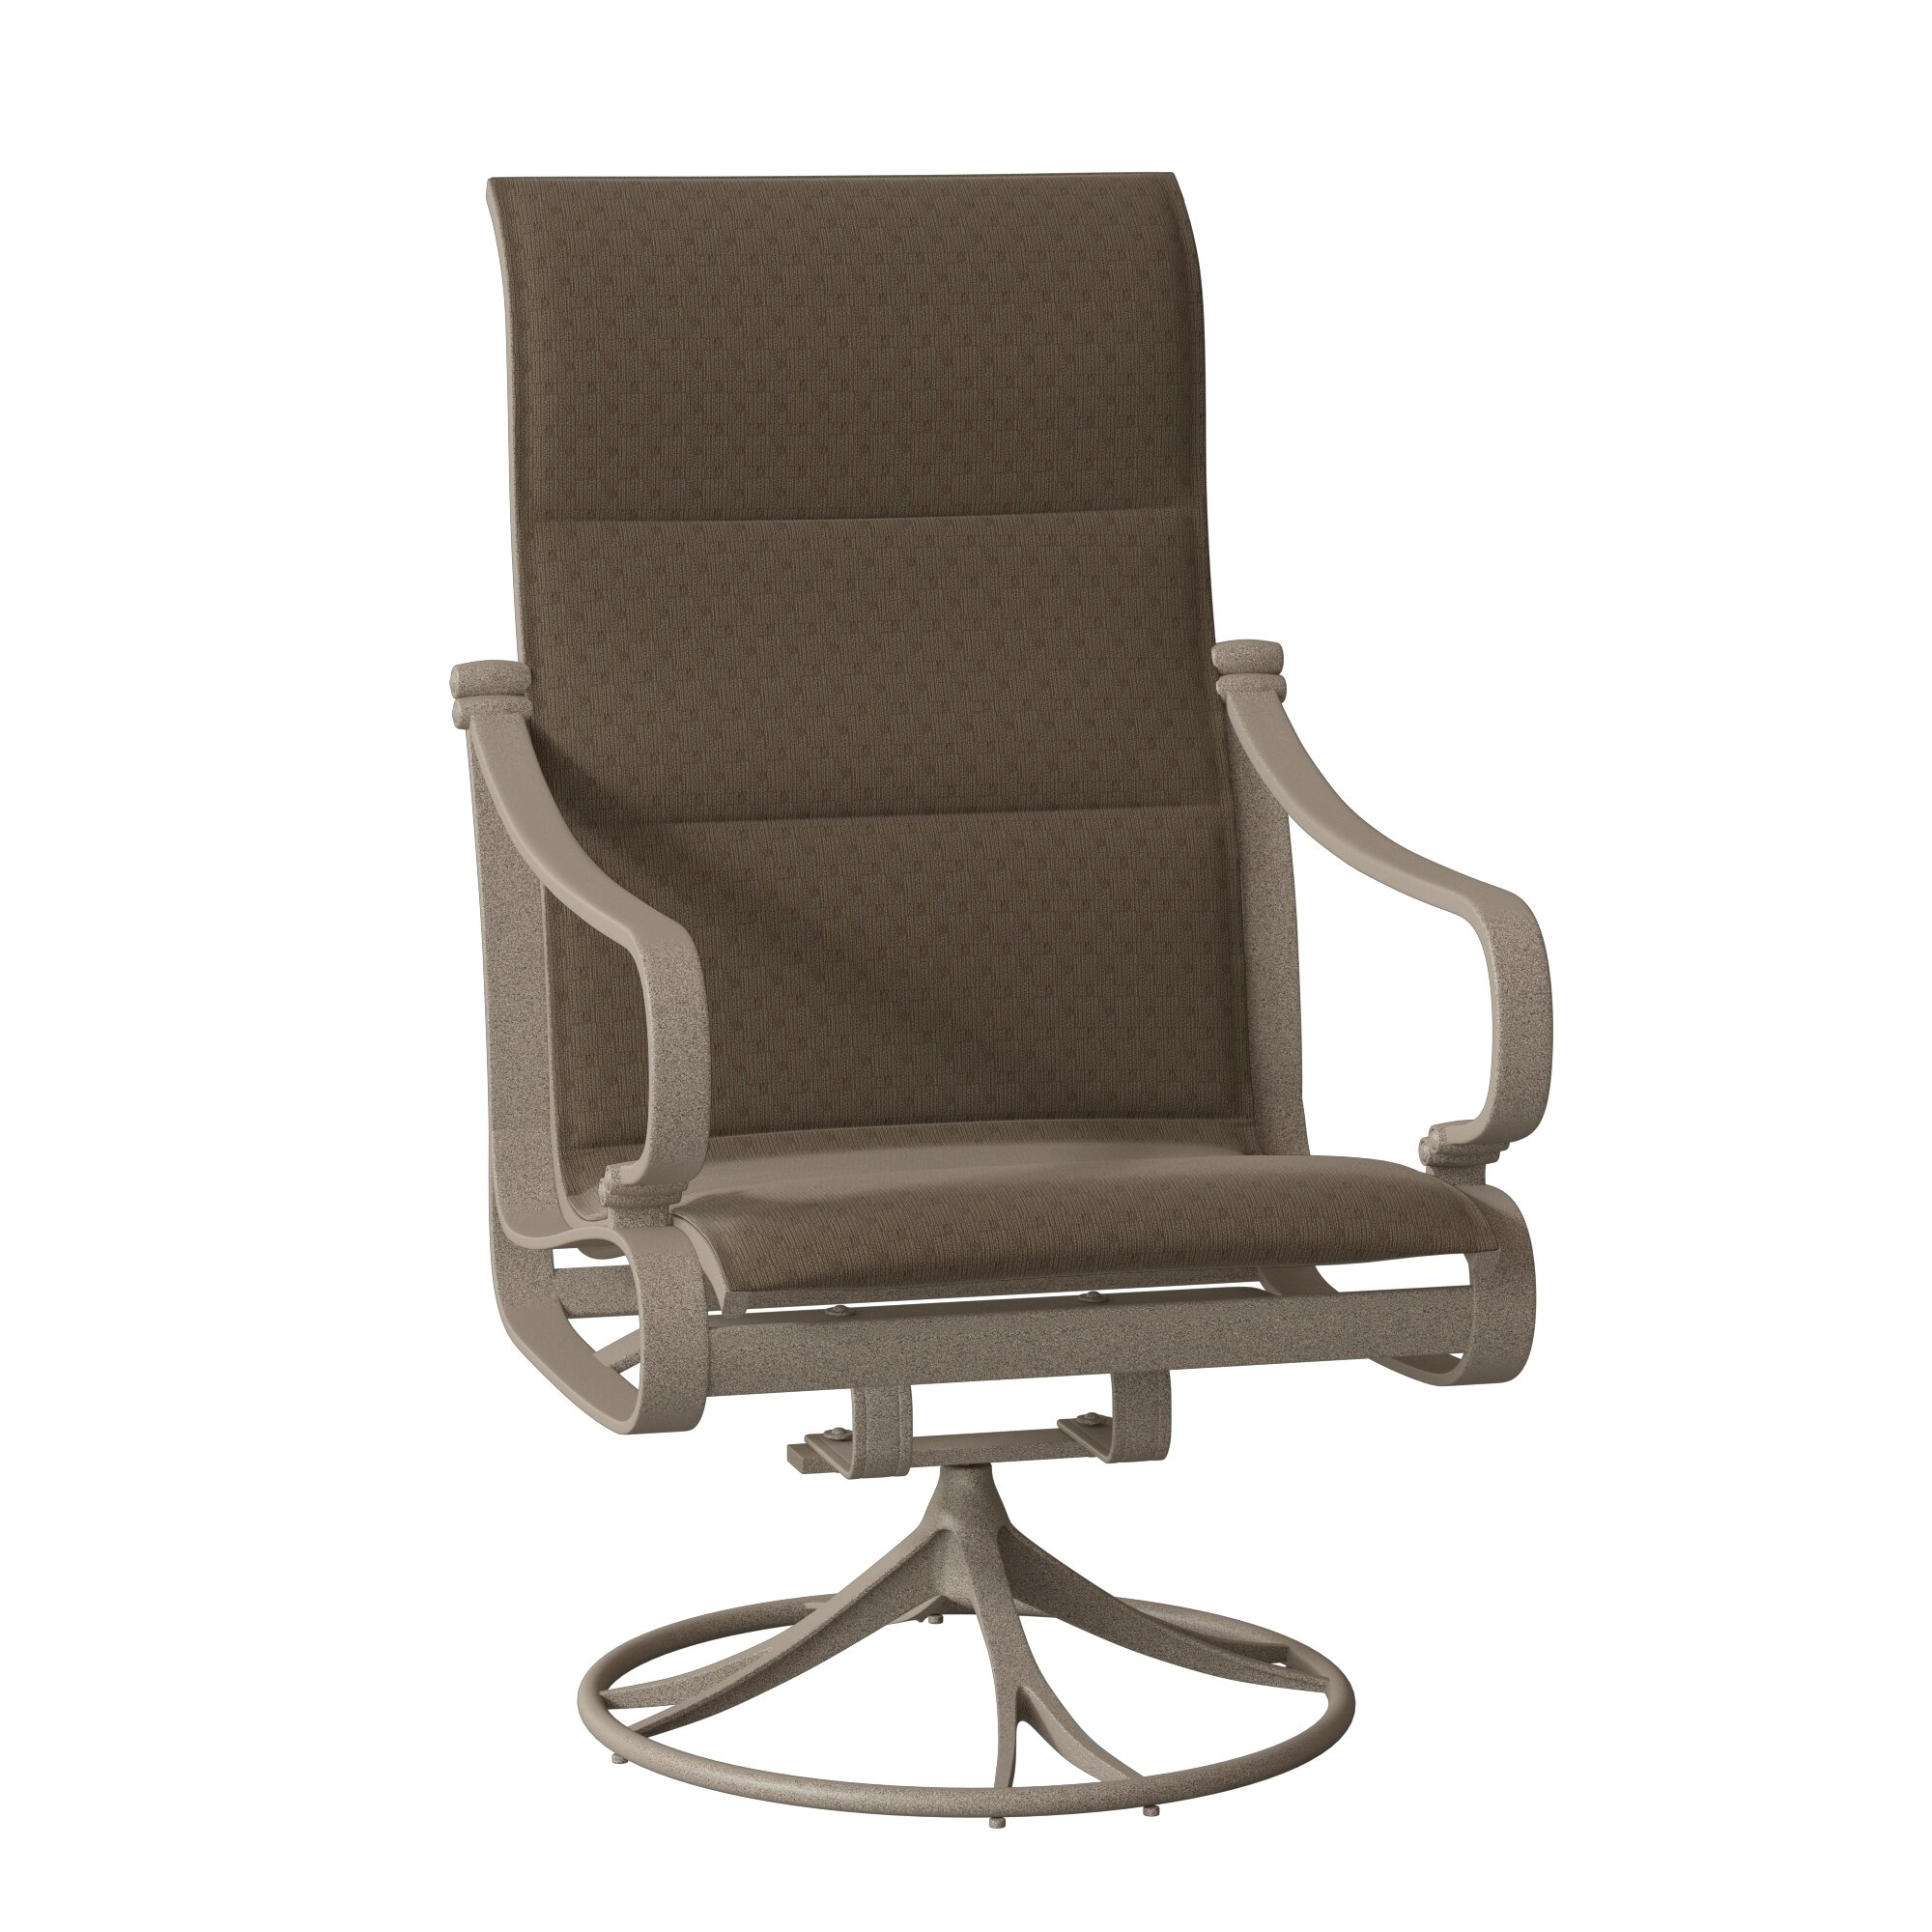 Torino Padded Sling High Back Swivel Rocking Chair With Cushion Pertaining To Padded Sling High Back Swivel Chairs (View 17 of 25)